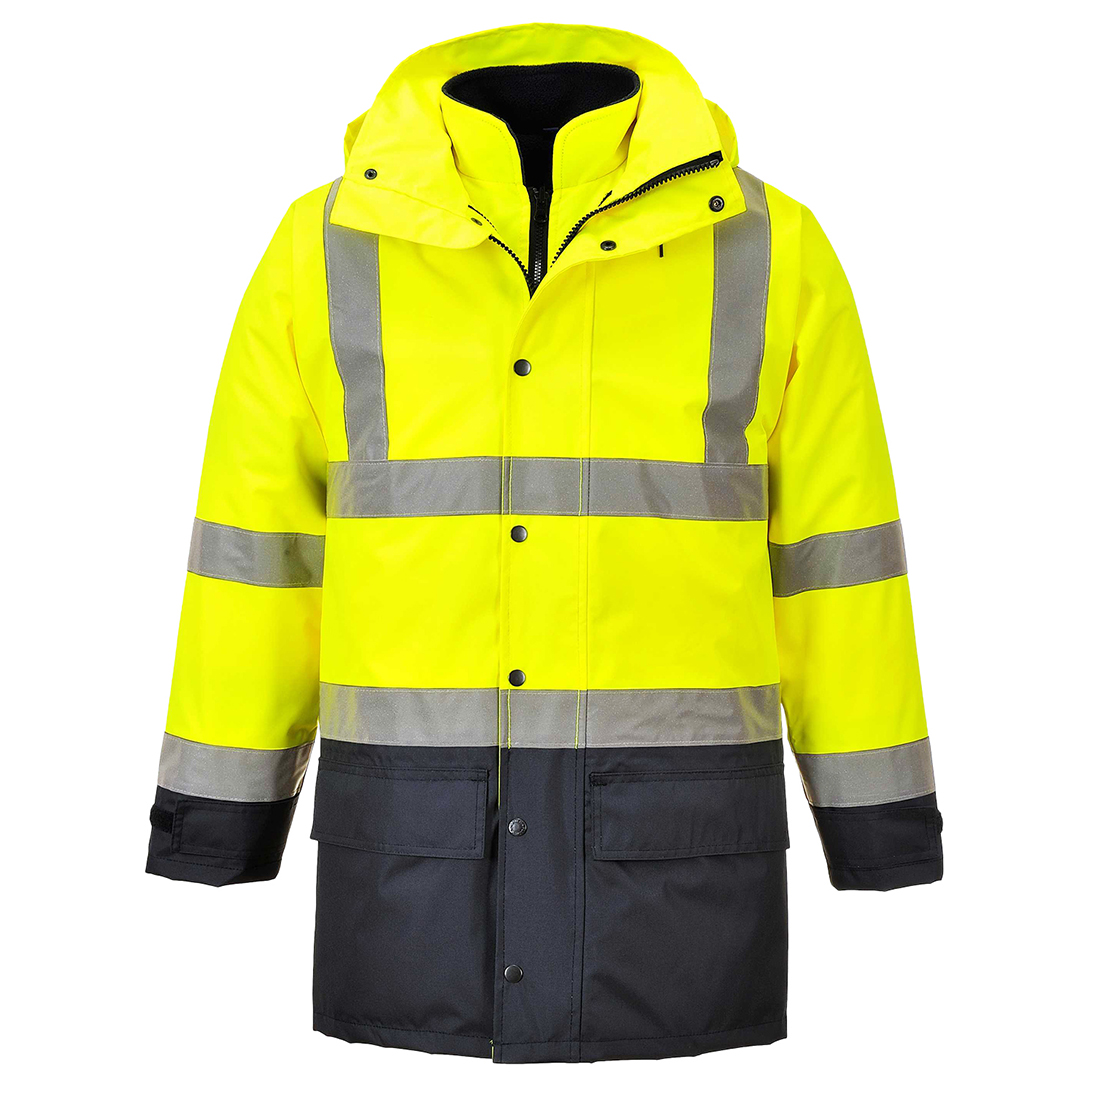 Portwest 5in1 HiVis Executive Jacket